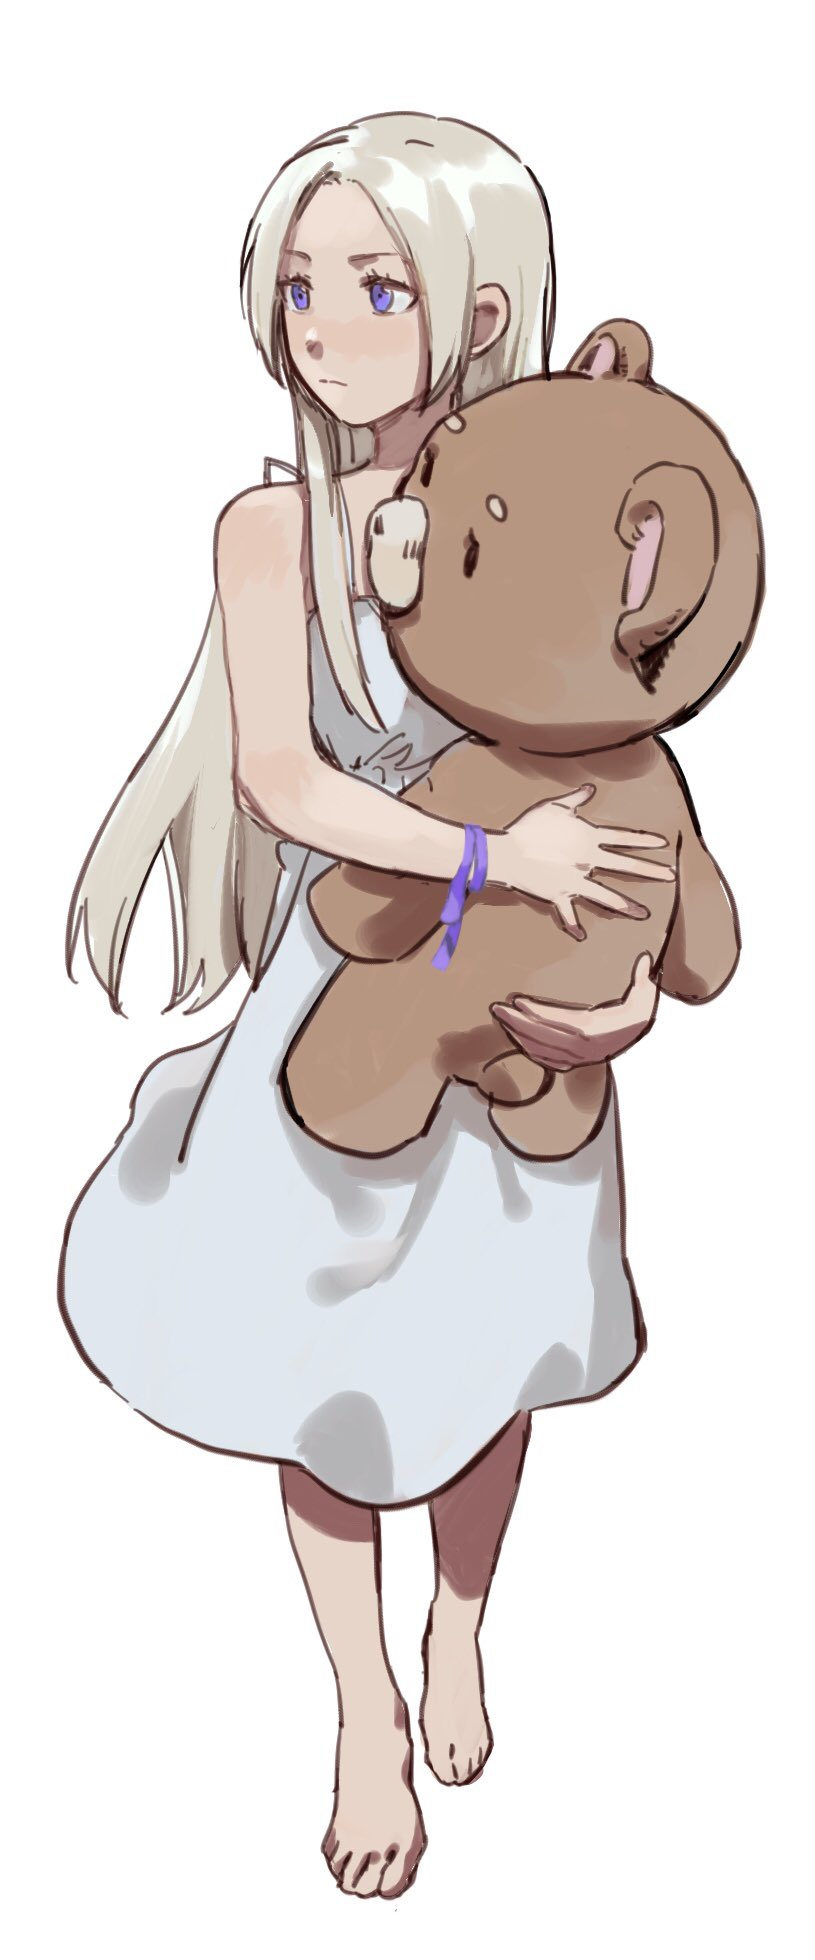 1girl artist_request barefoot blonde_hair blue_eyes dress edelgard_von_hresvelg fire_emblem fire_emblem:_three_houses highres hug long_hair simple_background stuffed_animal stuffed_toy teddy_bear white_background younger